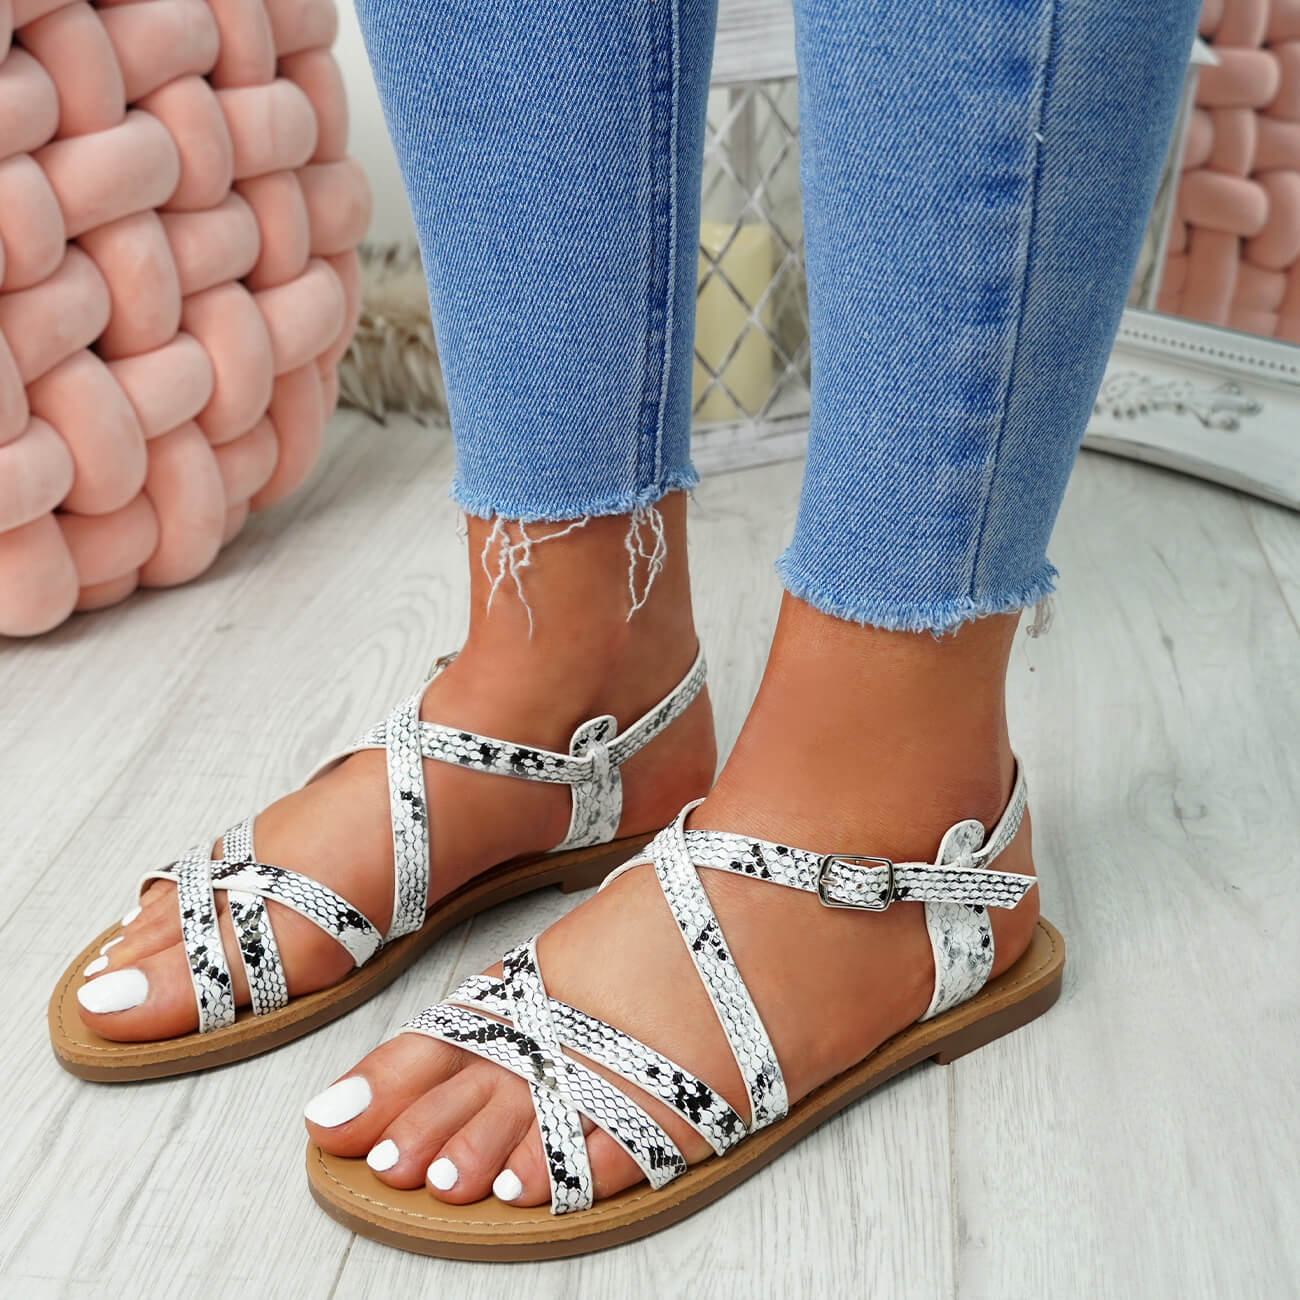 WOMENS-LADIES-ANKLE-STRAP-PEEP-TOE-BUCKLE-FLAT-SANDALS-SUMMER-CASUAL-SHOES thumbnail 27